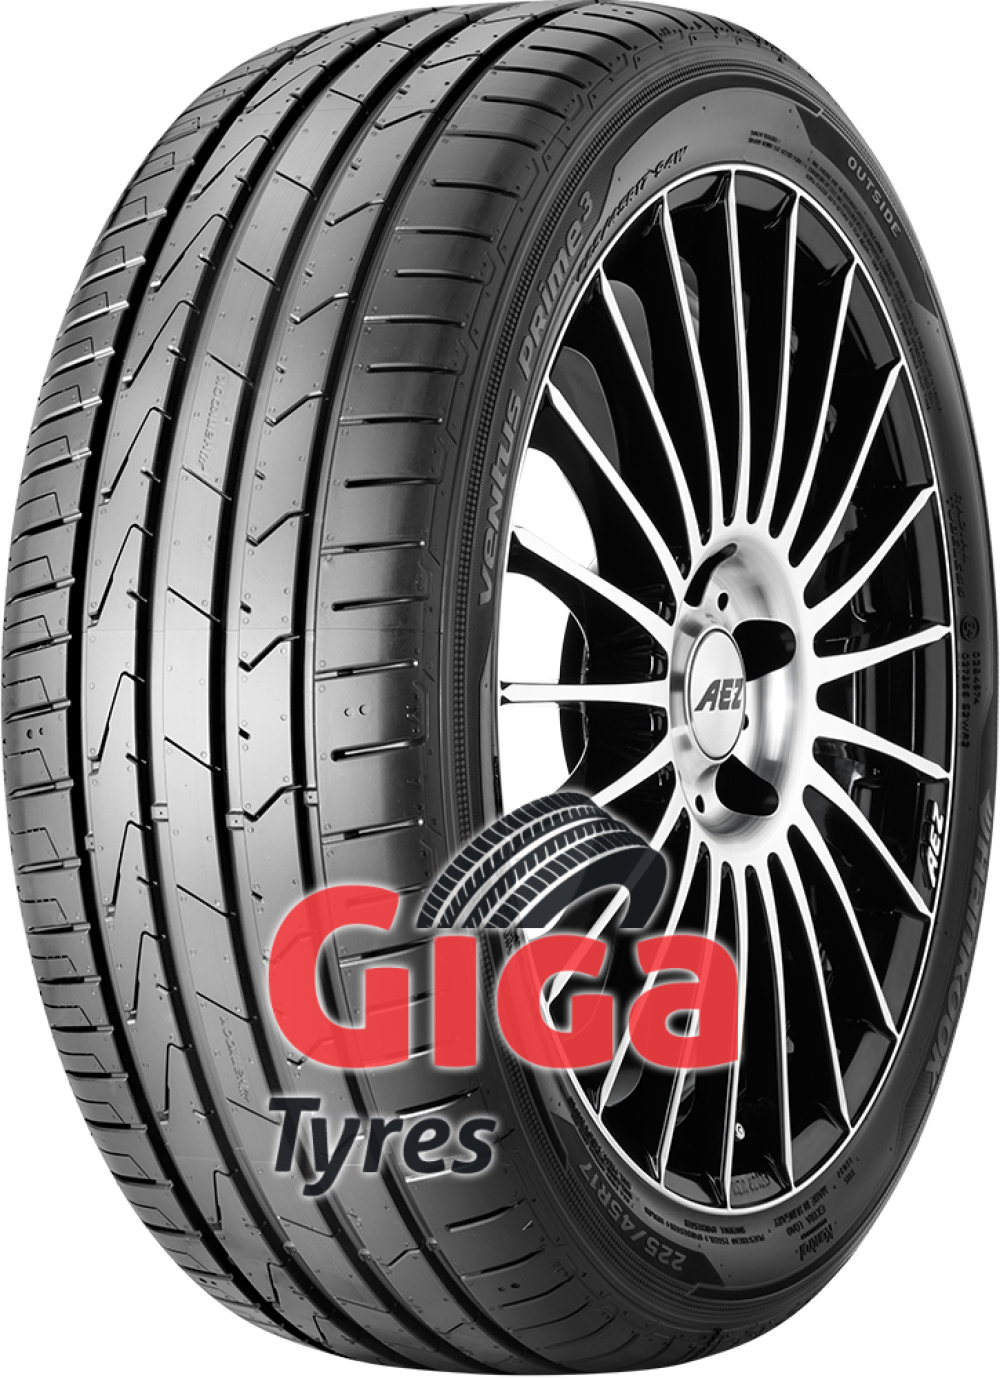 Hankook Ventus Prime 3 K125 ( 225/55 R16 99Y XL with rim protection (MFS) SBL )